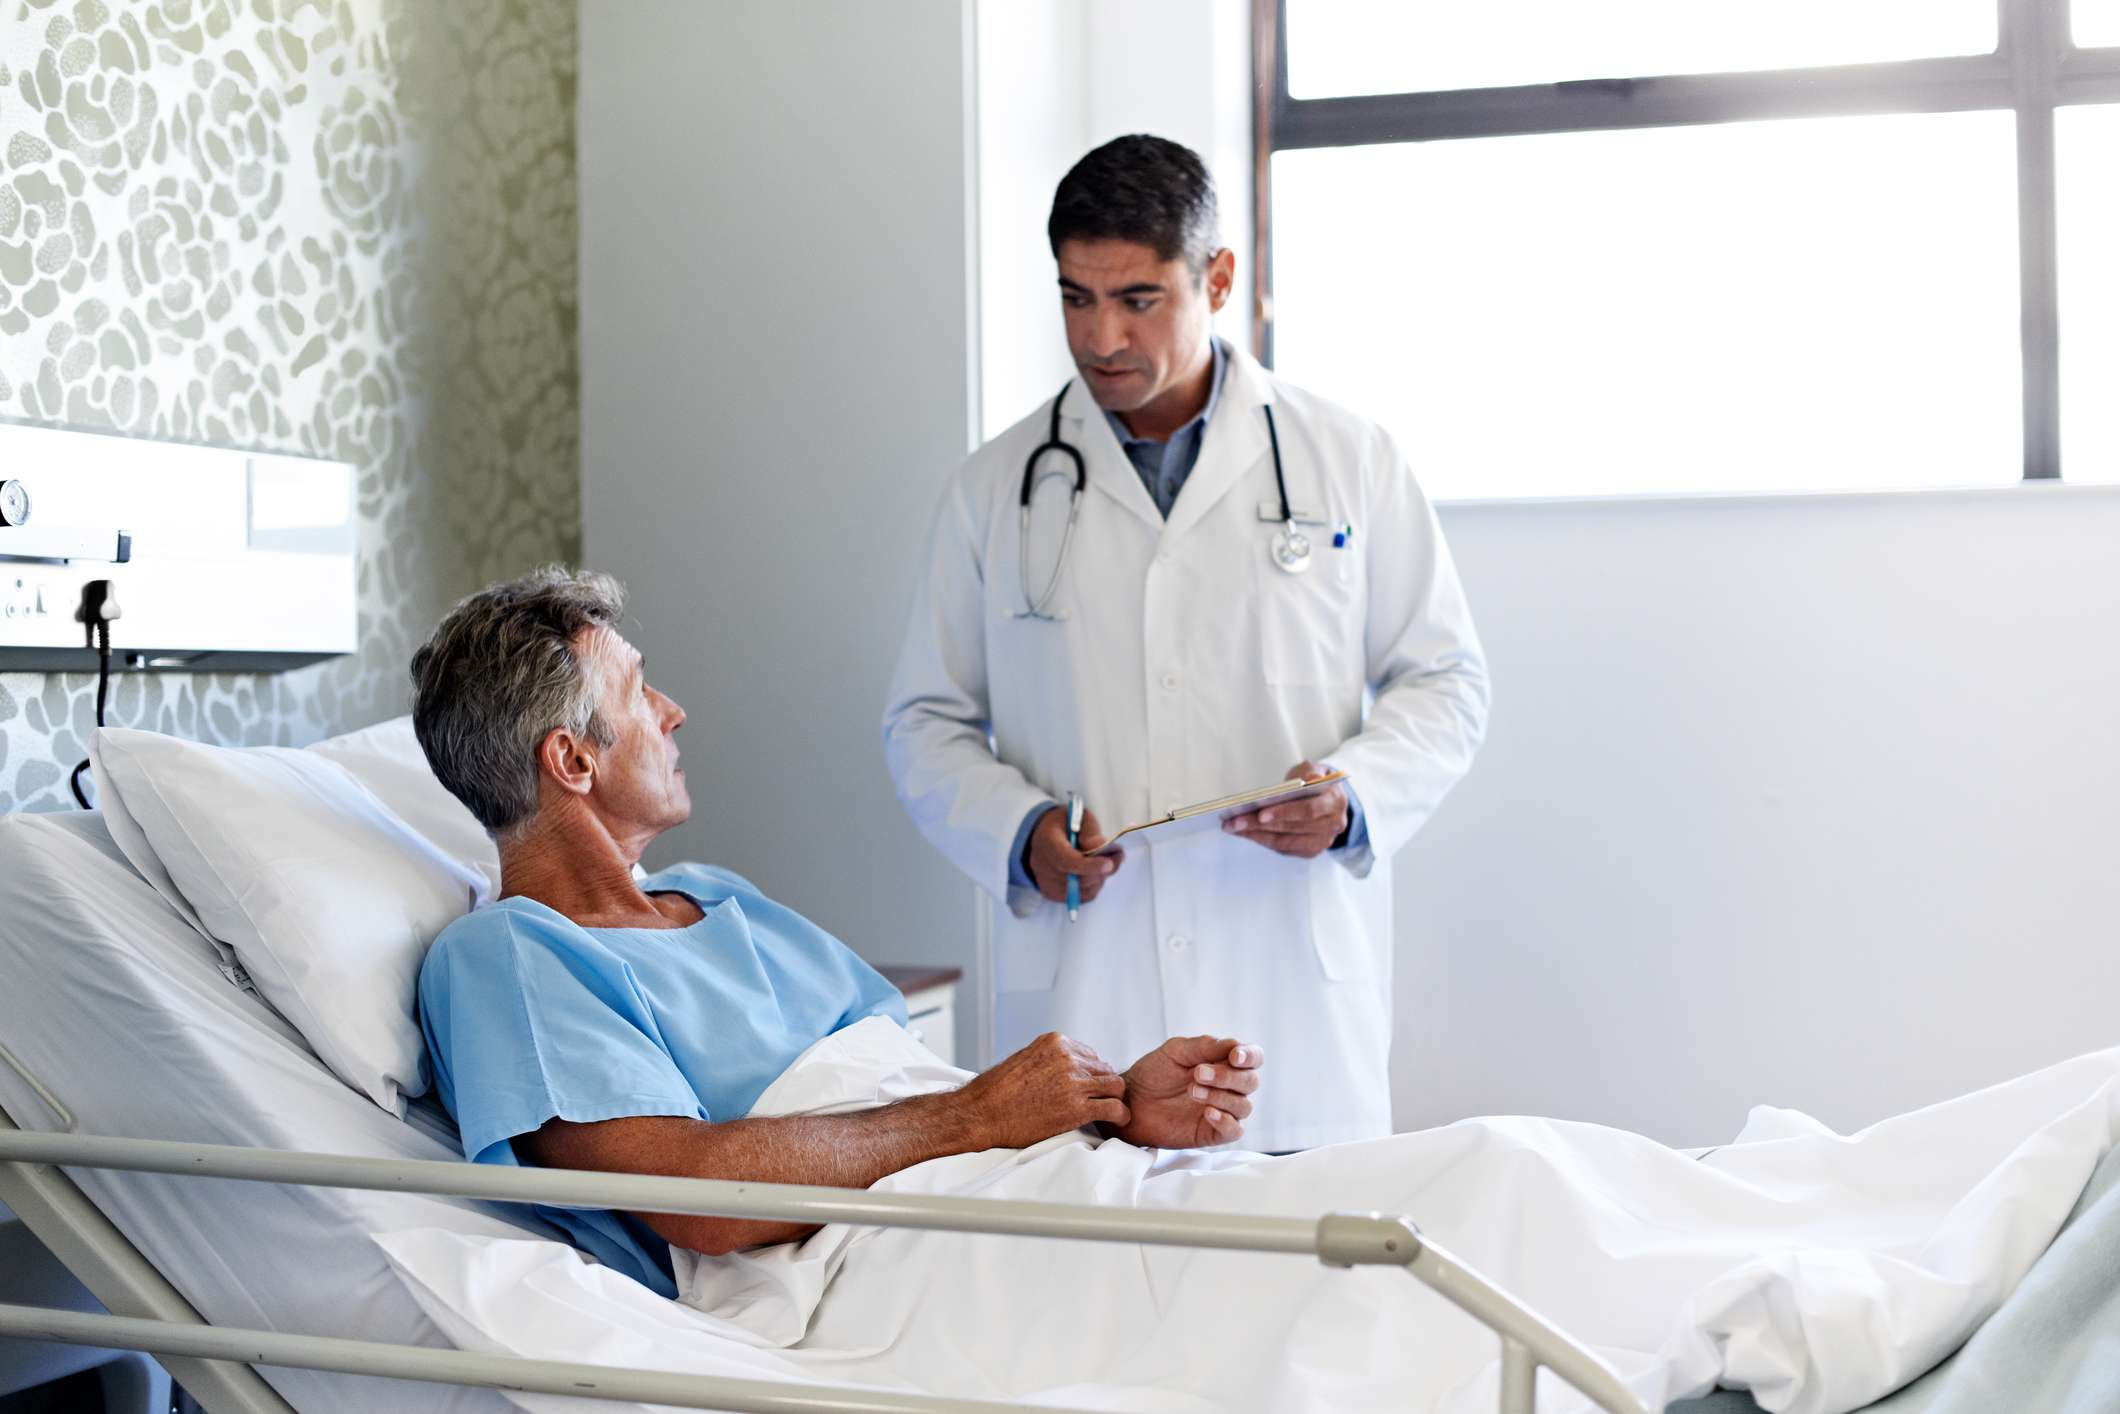 A man and his doctor talking in a hospital room